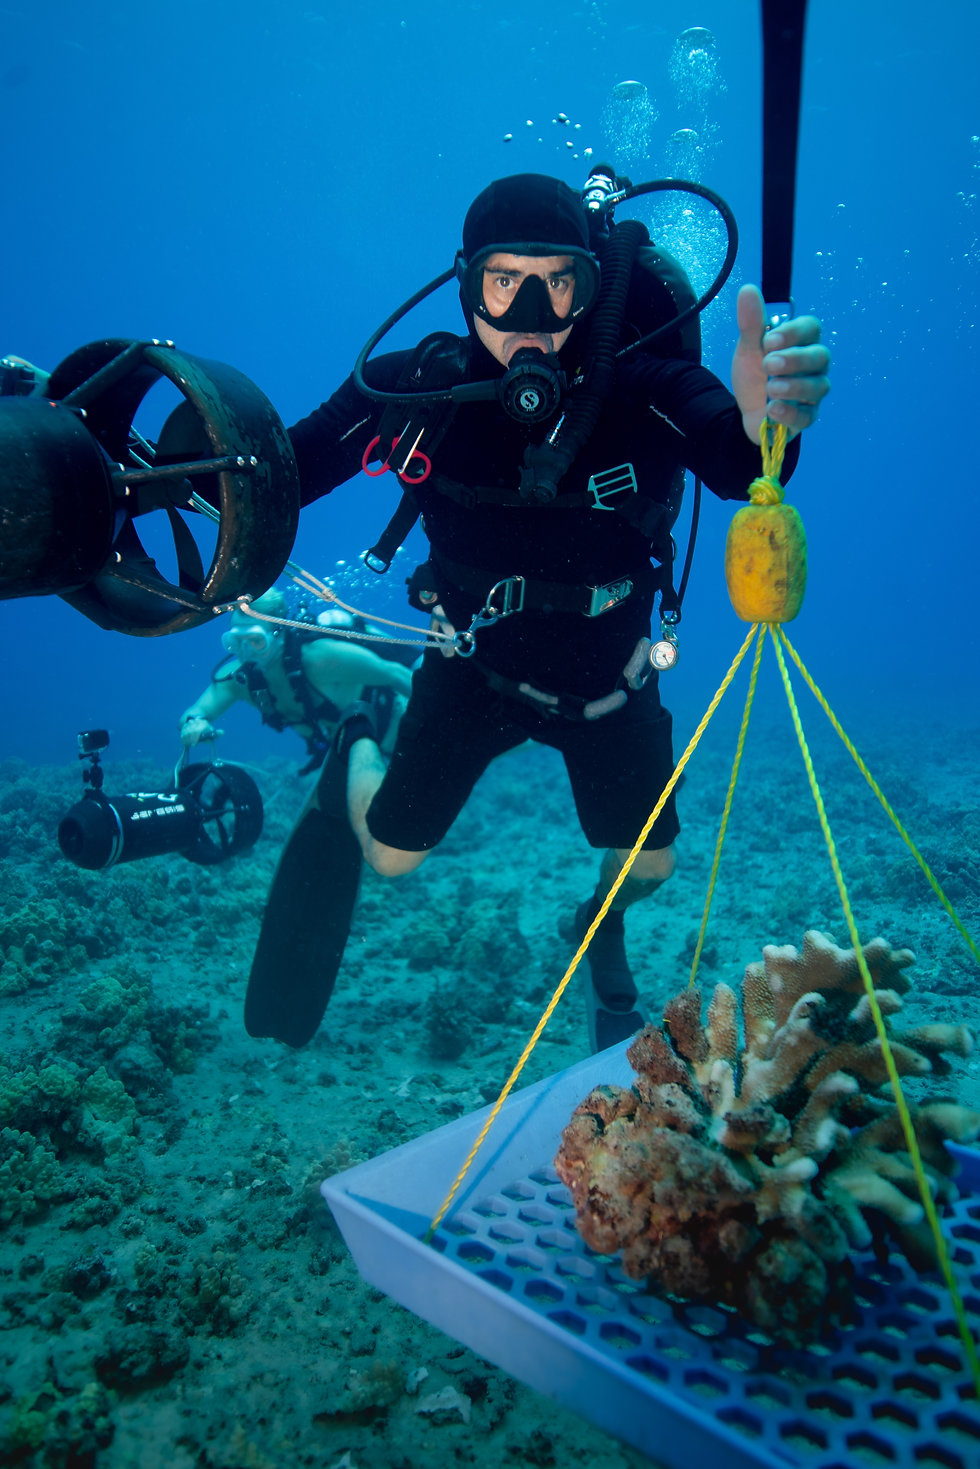 Scuba Diver Collecting dislodged Coral